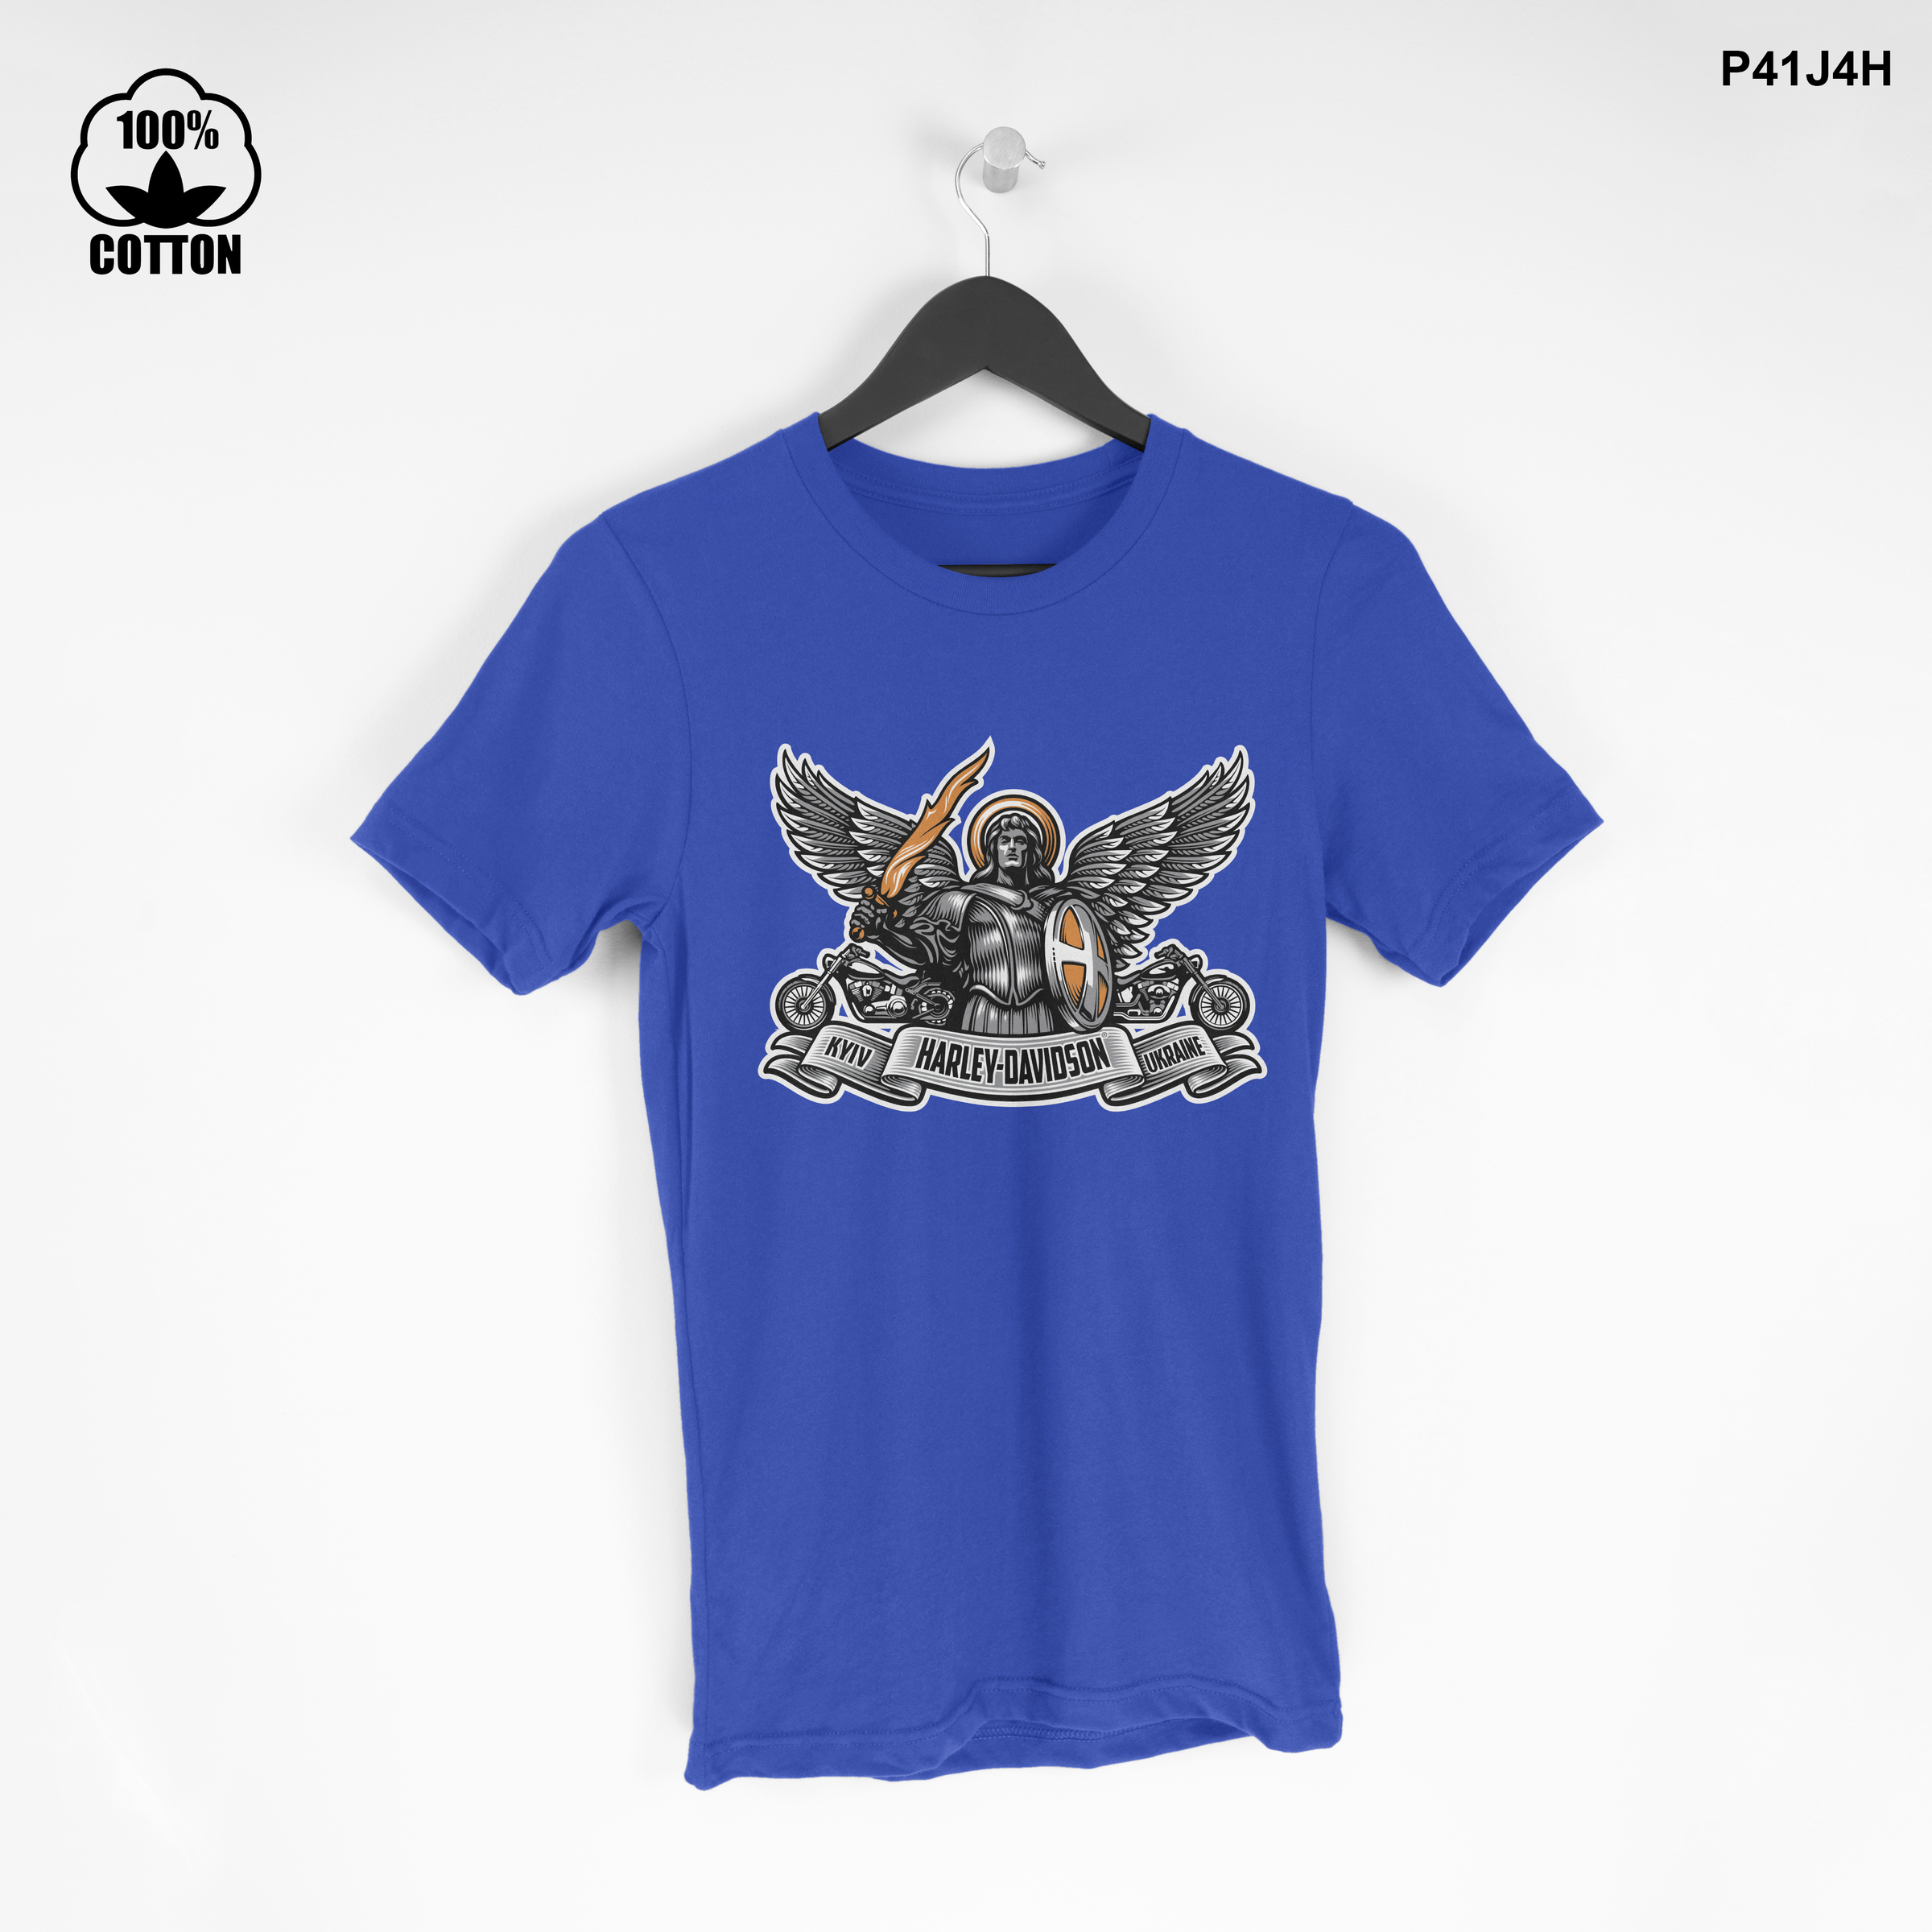 LIMITED EDITION!! kiev-logo-harley-davidson-dealer-motorcycle T Shirt Tee Dodger Blue.jpg